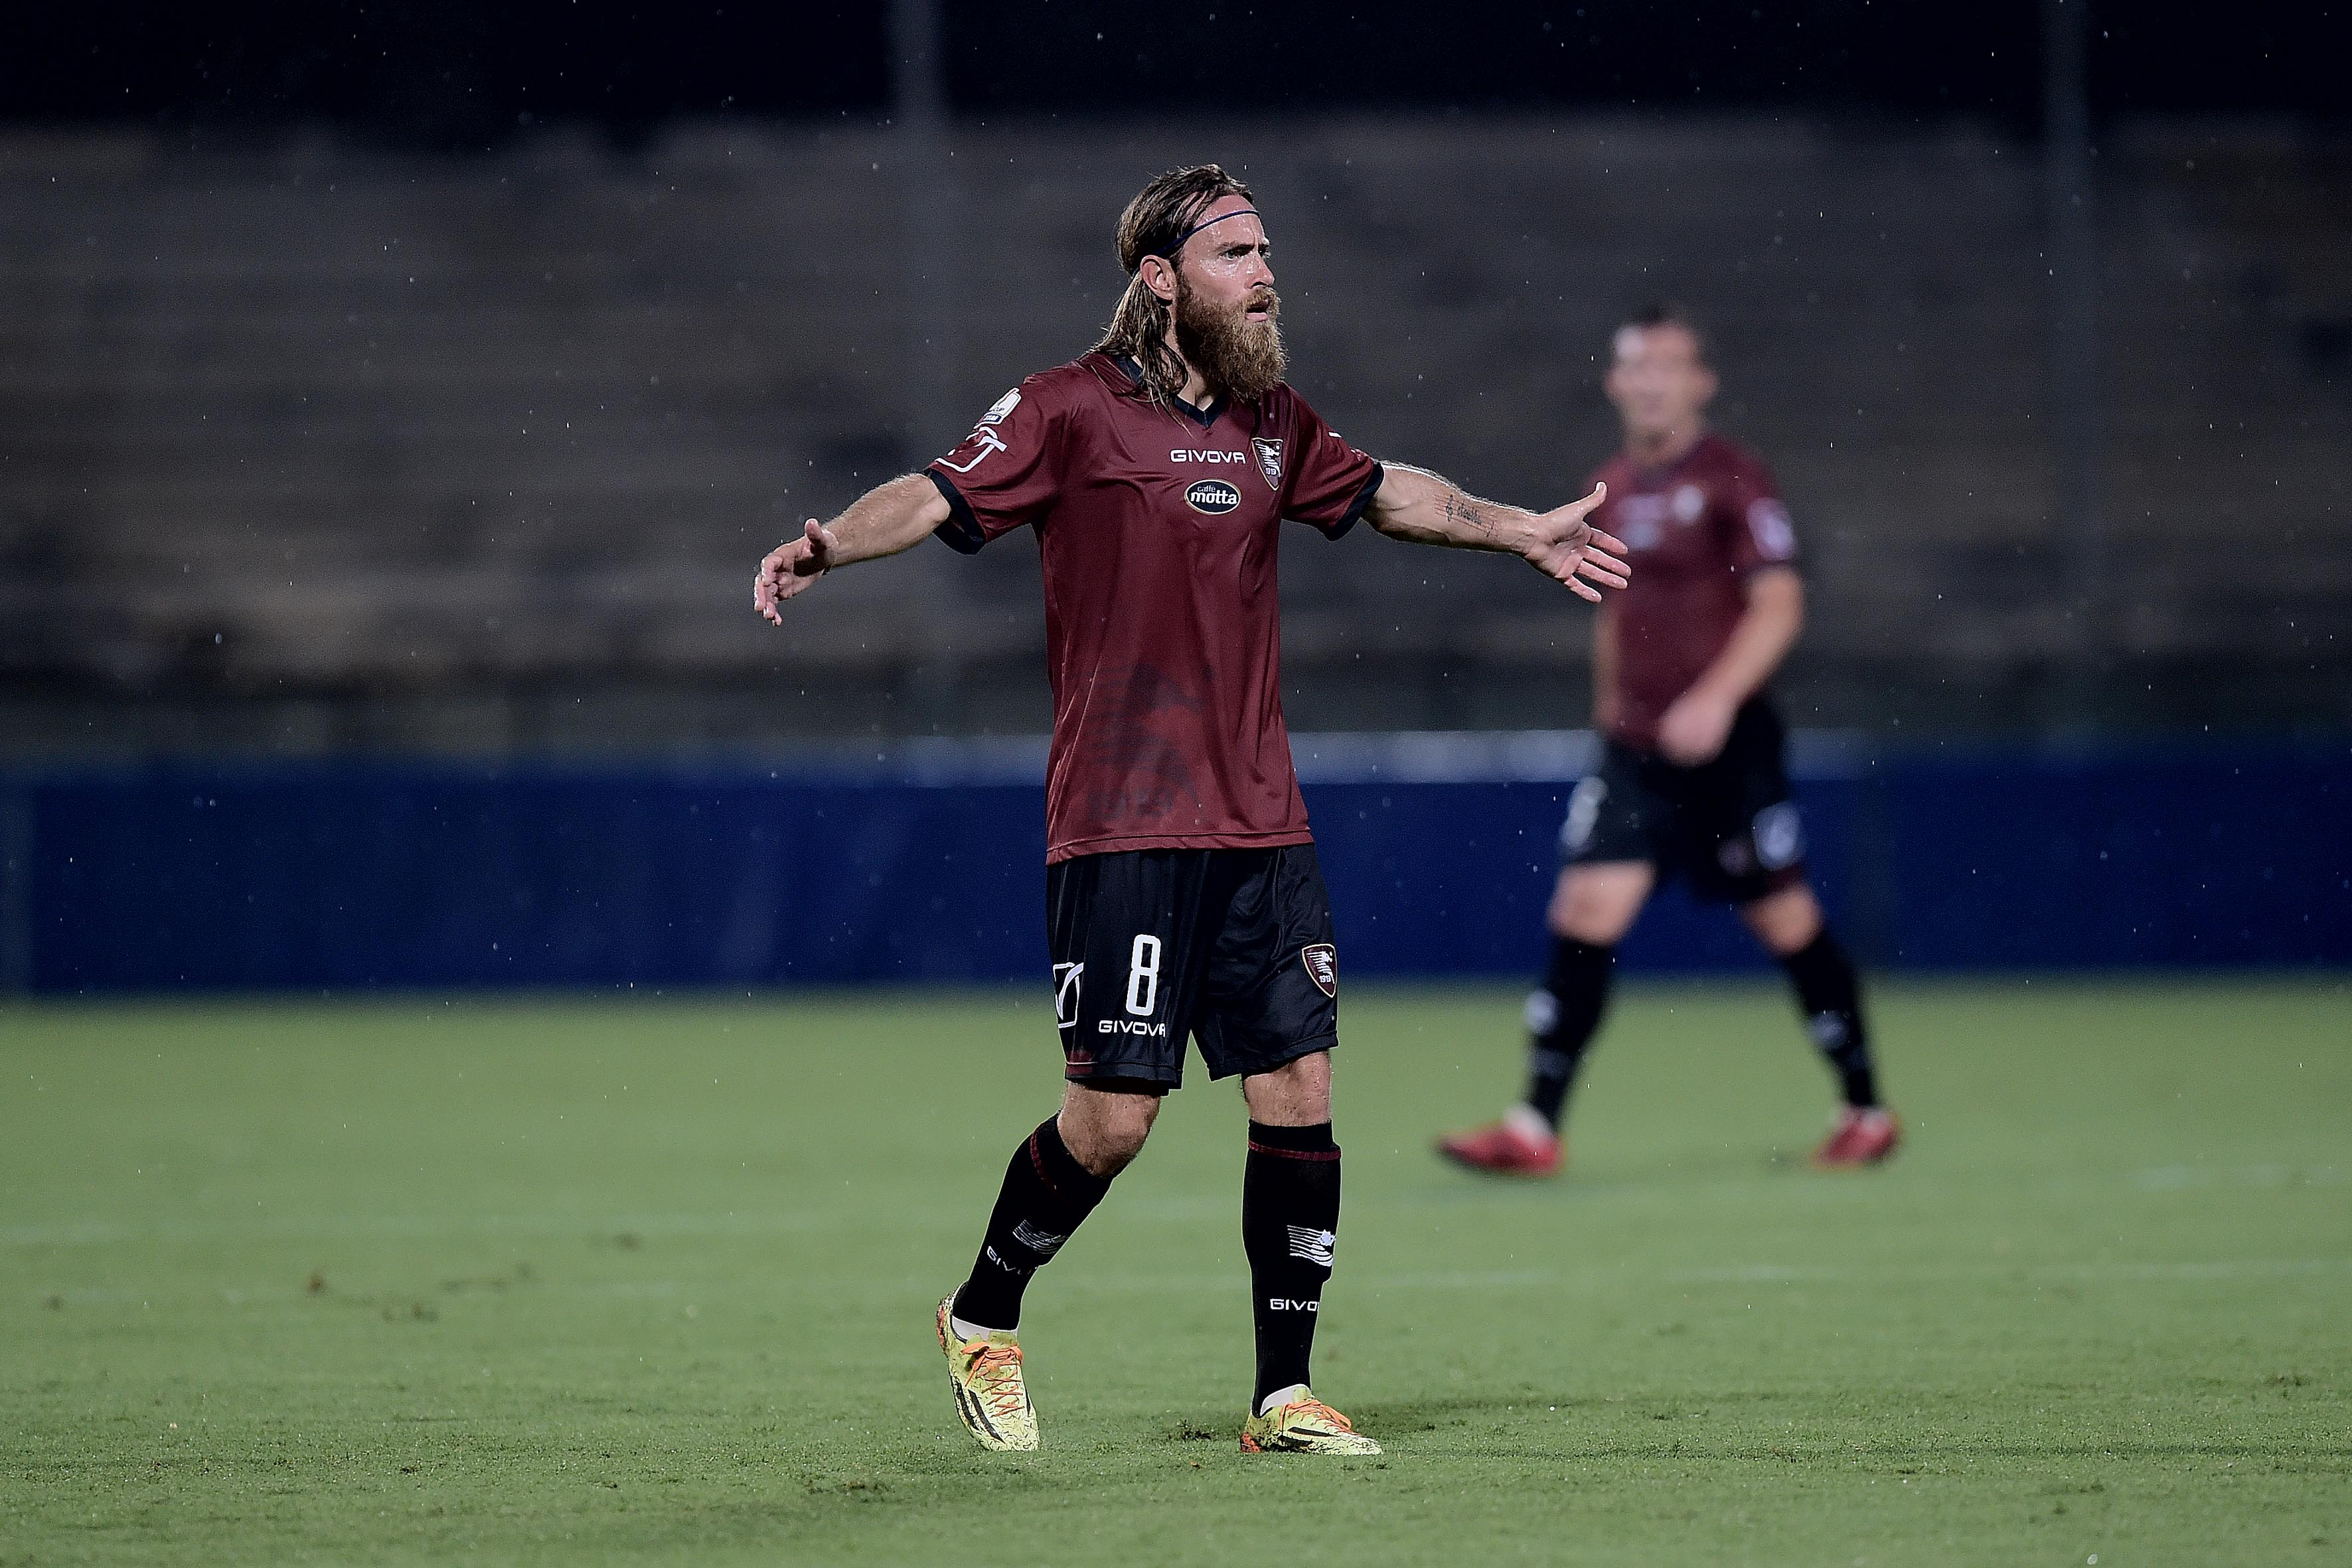 Salernitana vs Pisa - Coppa Italia 2015 2016